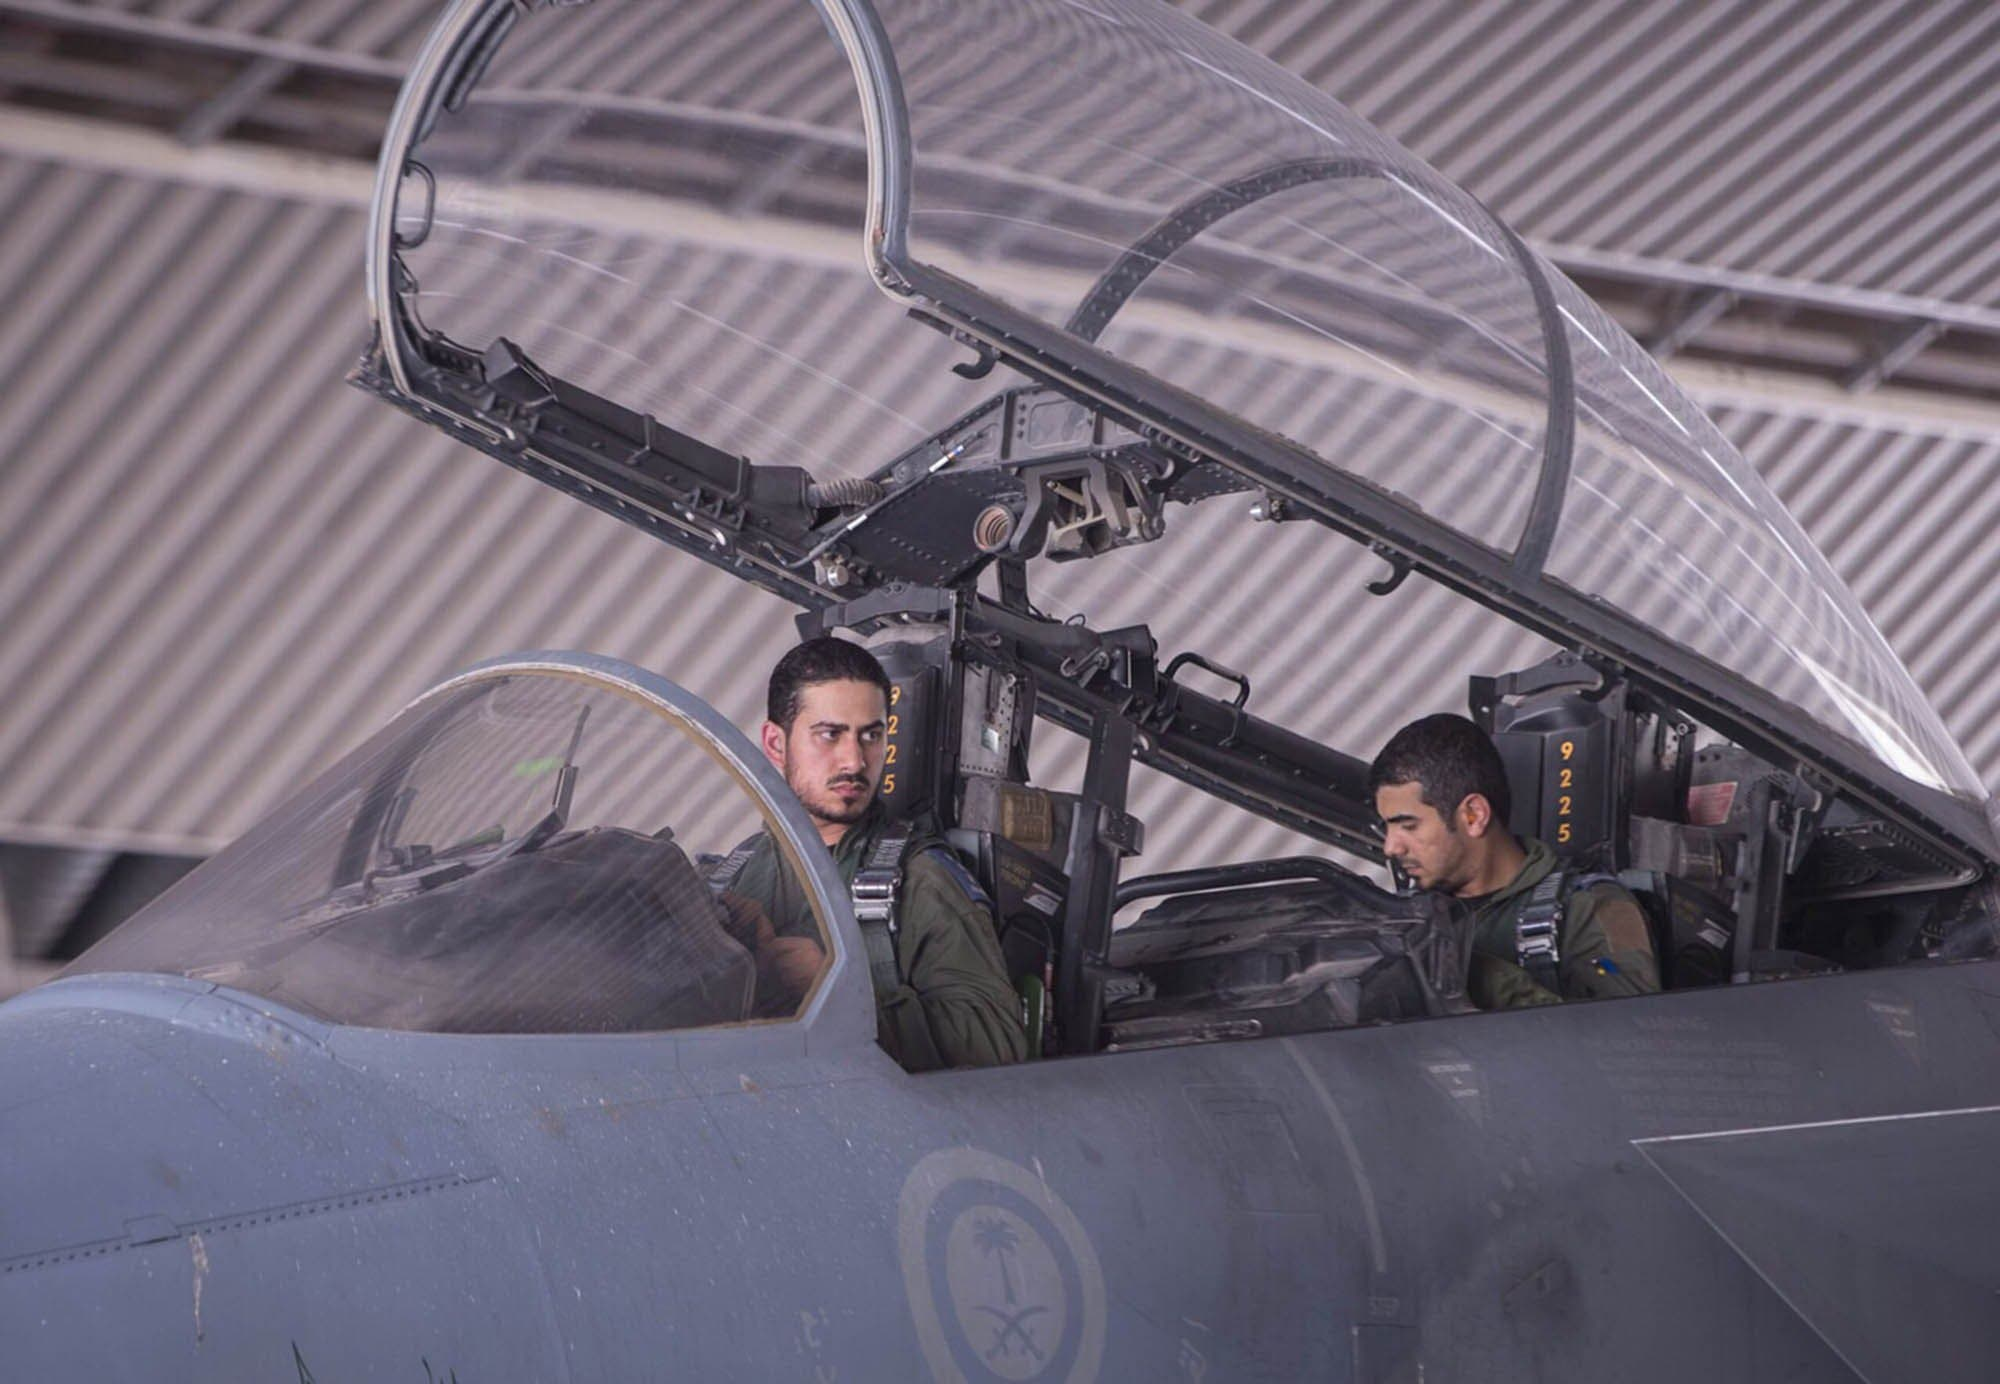 In a handout picture released by the official Saudi Press Agency (SPA), Saudi Arabian air force pilots sit in the cockpit of a fighter jet at an undisclosed location on September 23, 2014 AFP